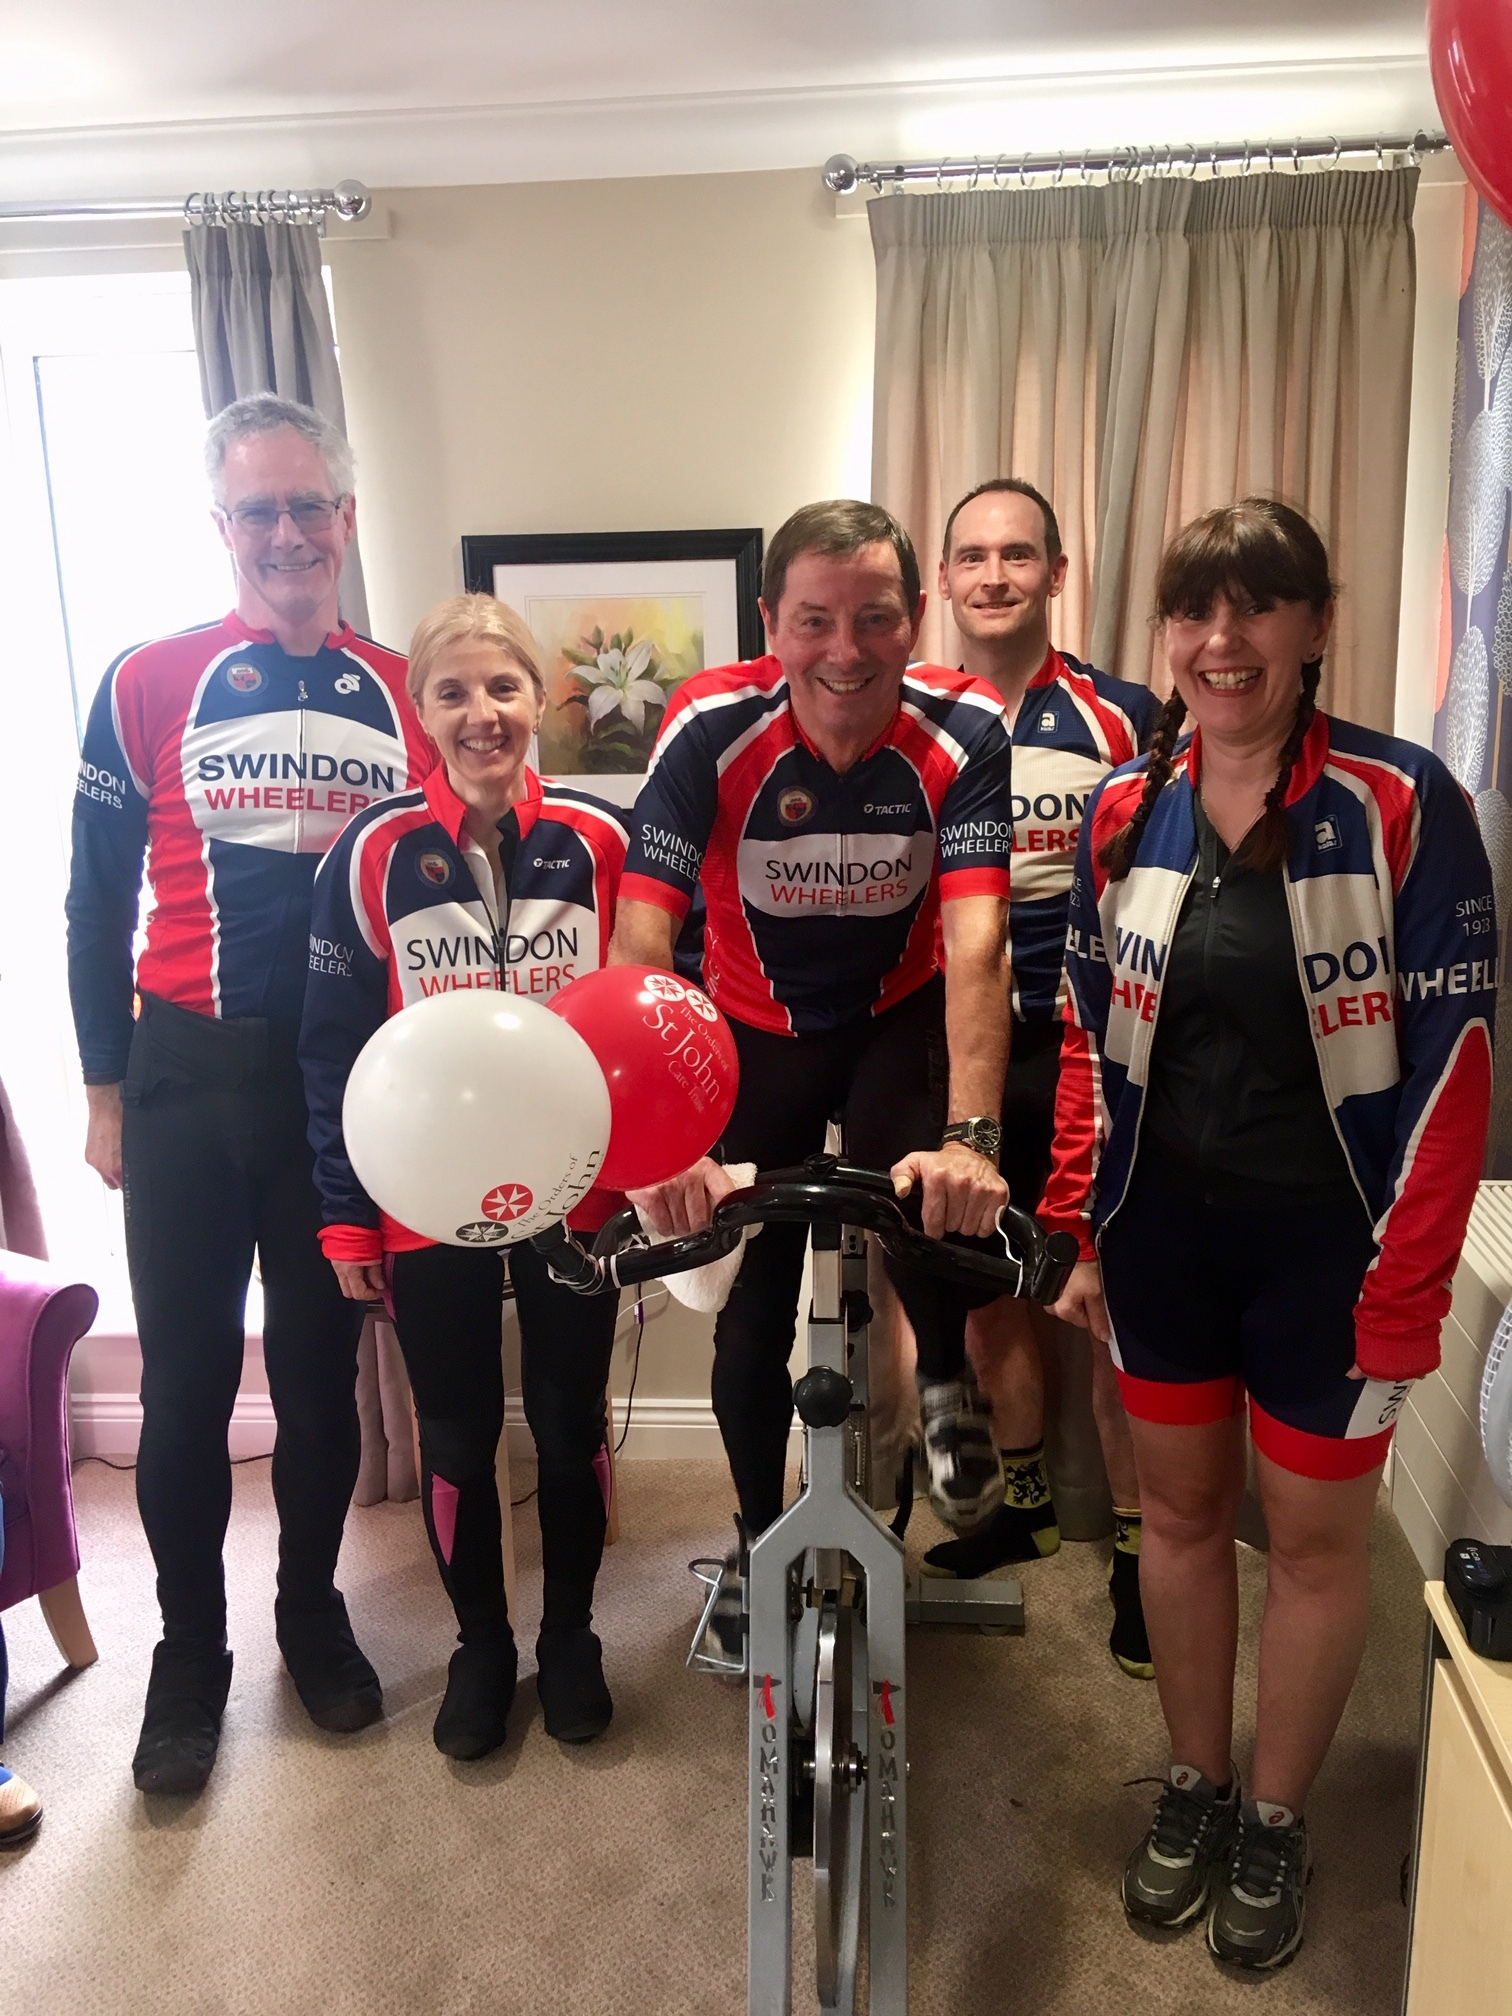 Swindon Wheelers took part in a 24hr sponsored cycle.